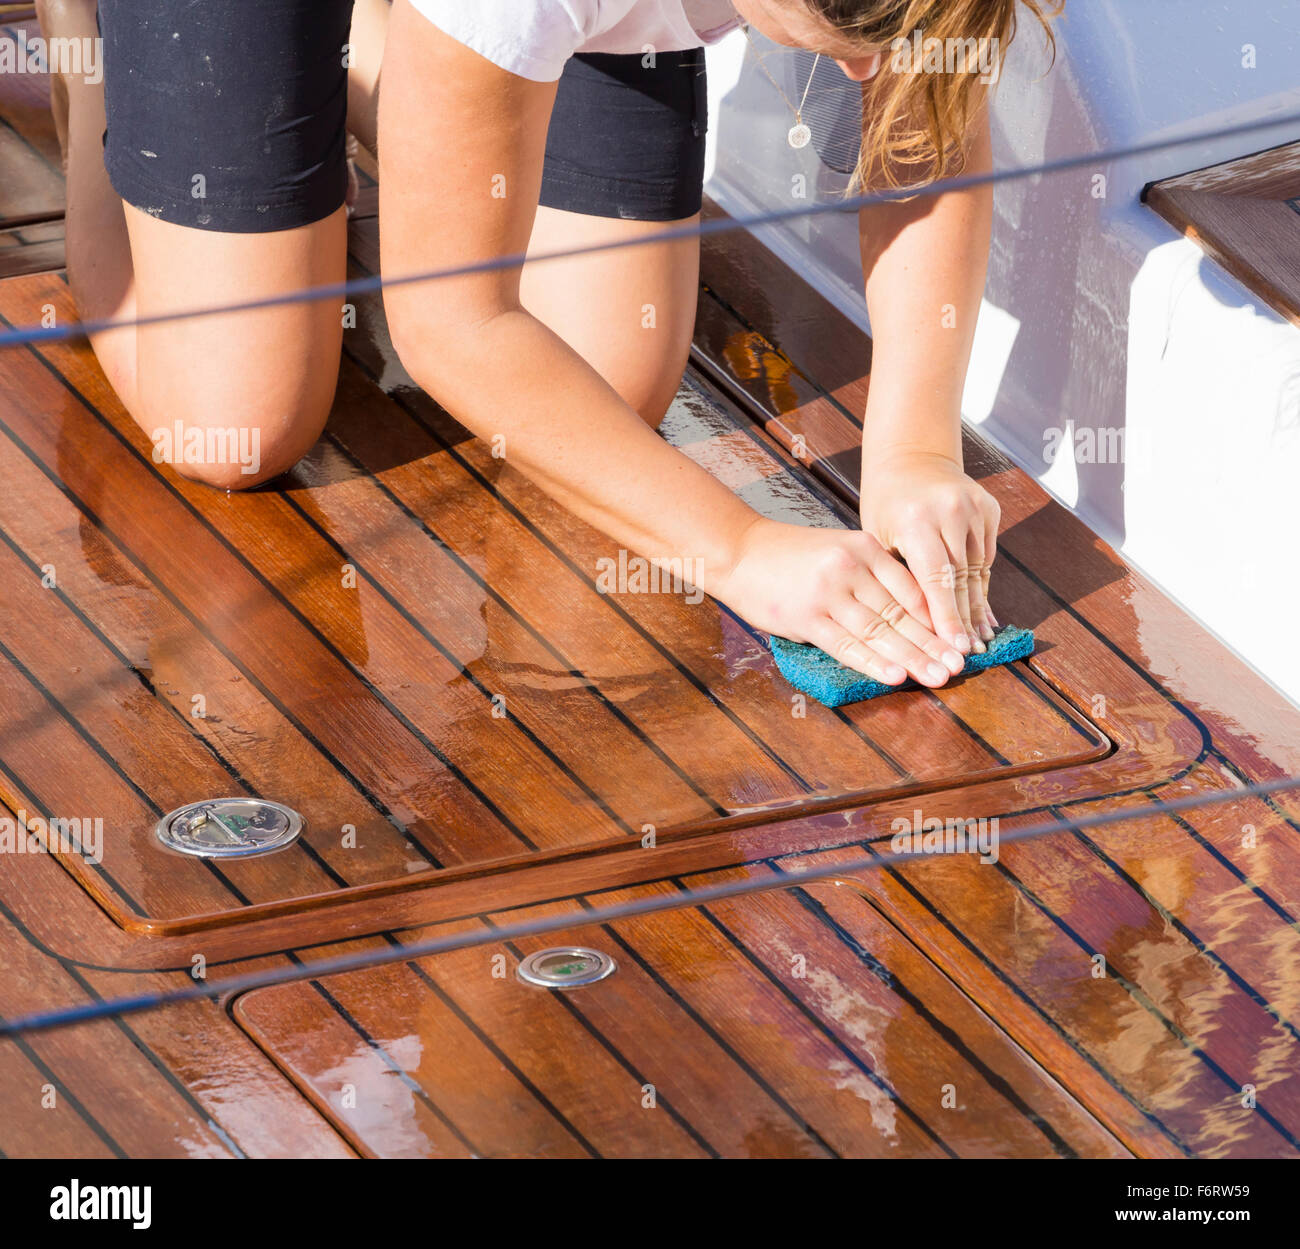 Young female crew member scrubbing deck of luxury yacht - Stock Image